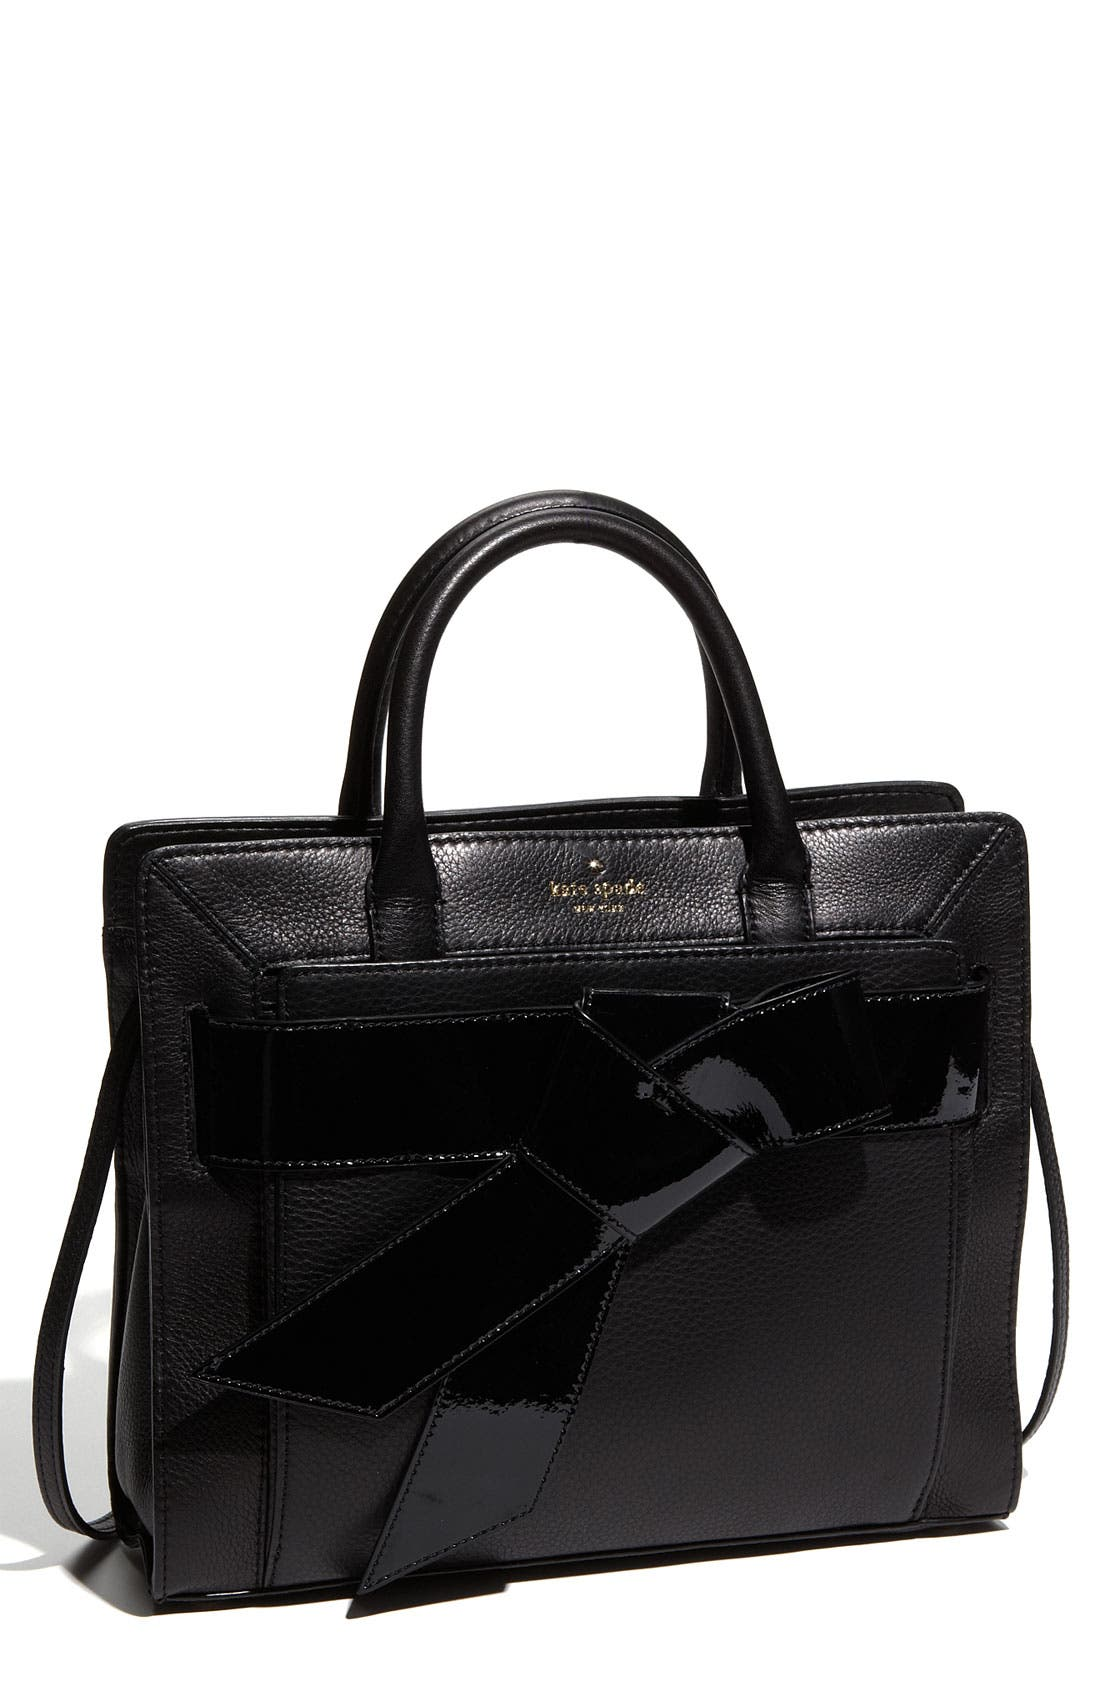 Alternate Image 1 Selected - kate spade new york 'bow valley - rosa' satchel